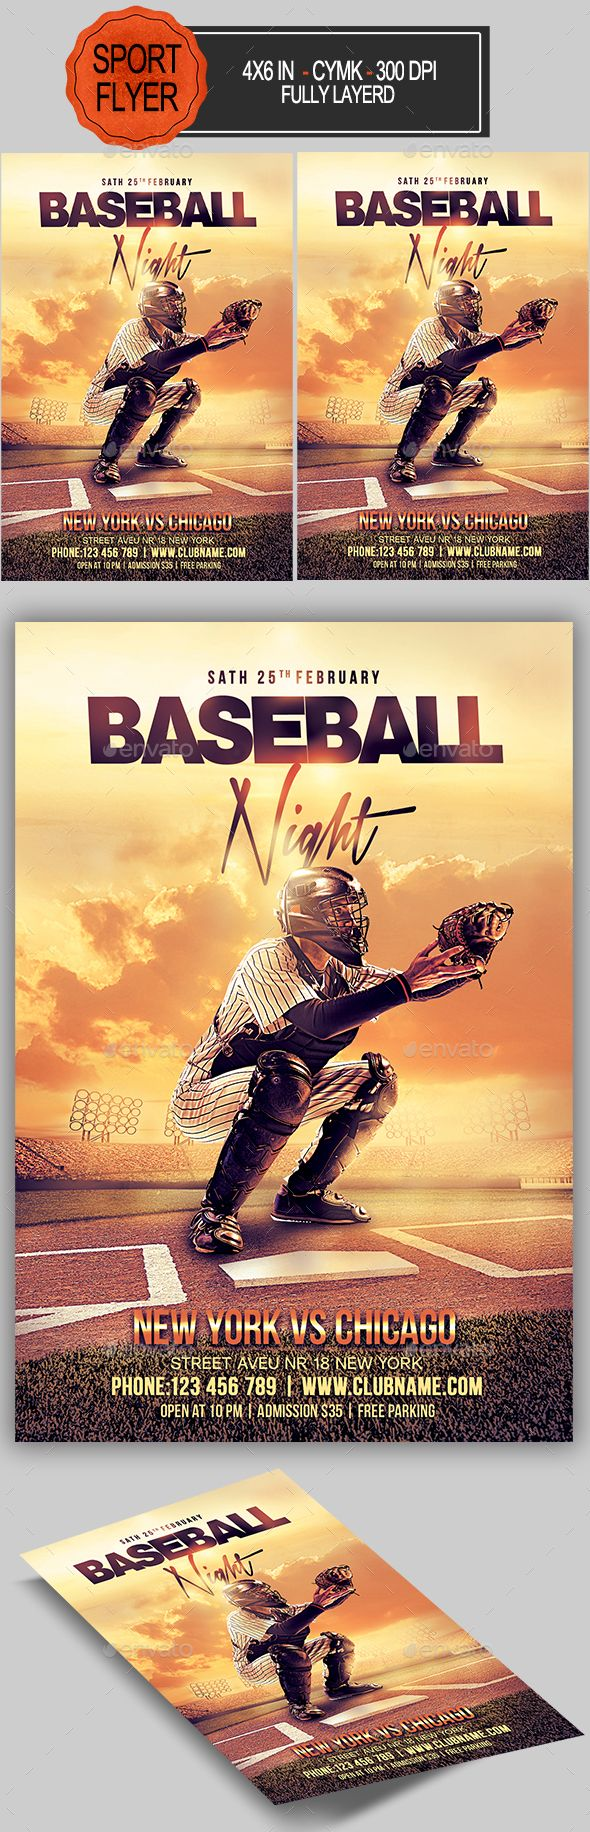 Baseball Flyer  Fonts Flyer Template And Event Flyers